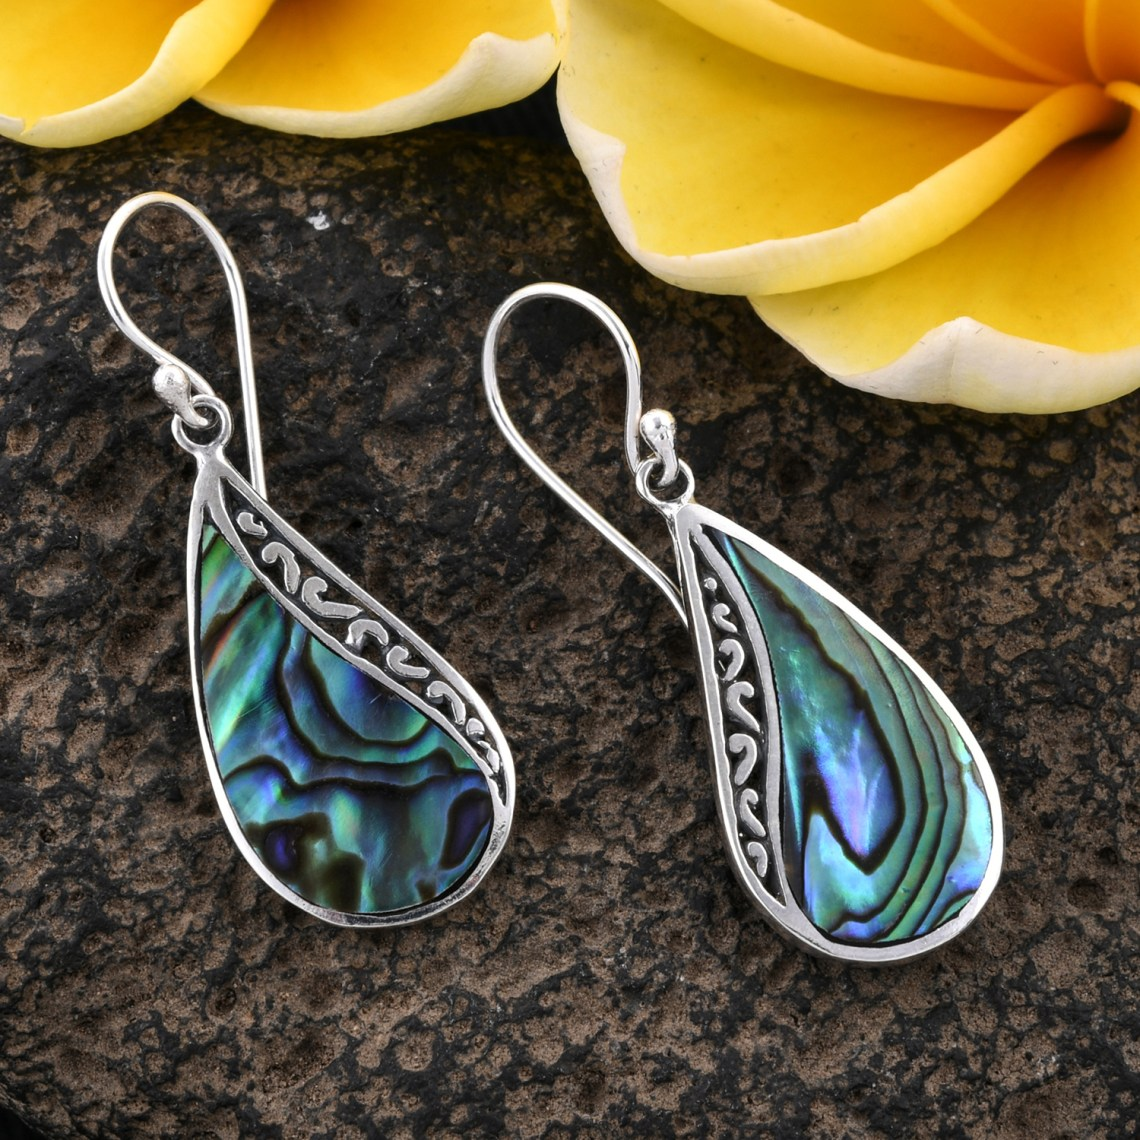 Abalone shell earrings on granite surface.